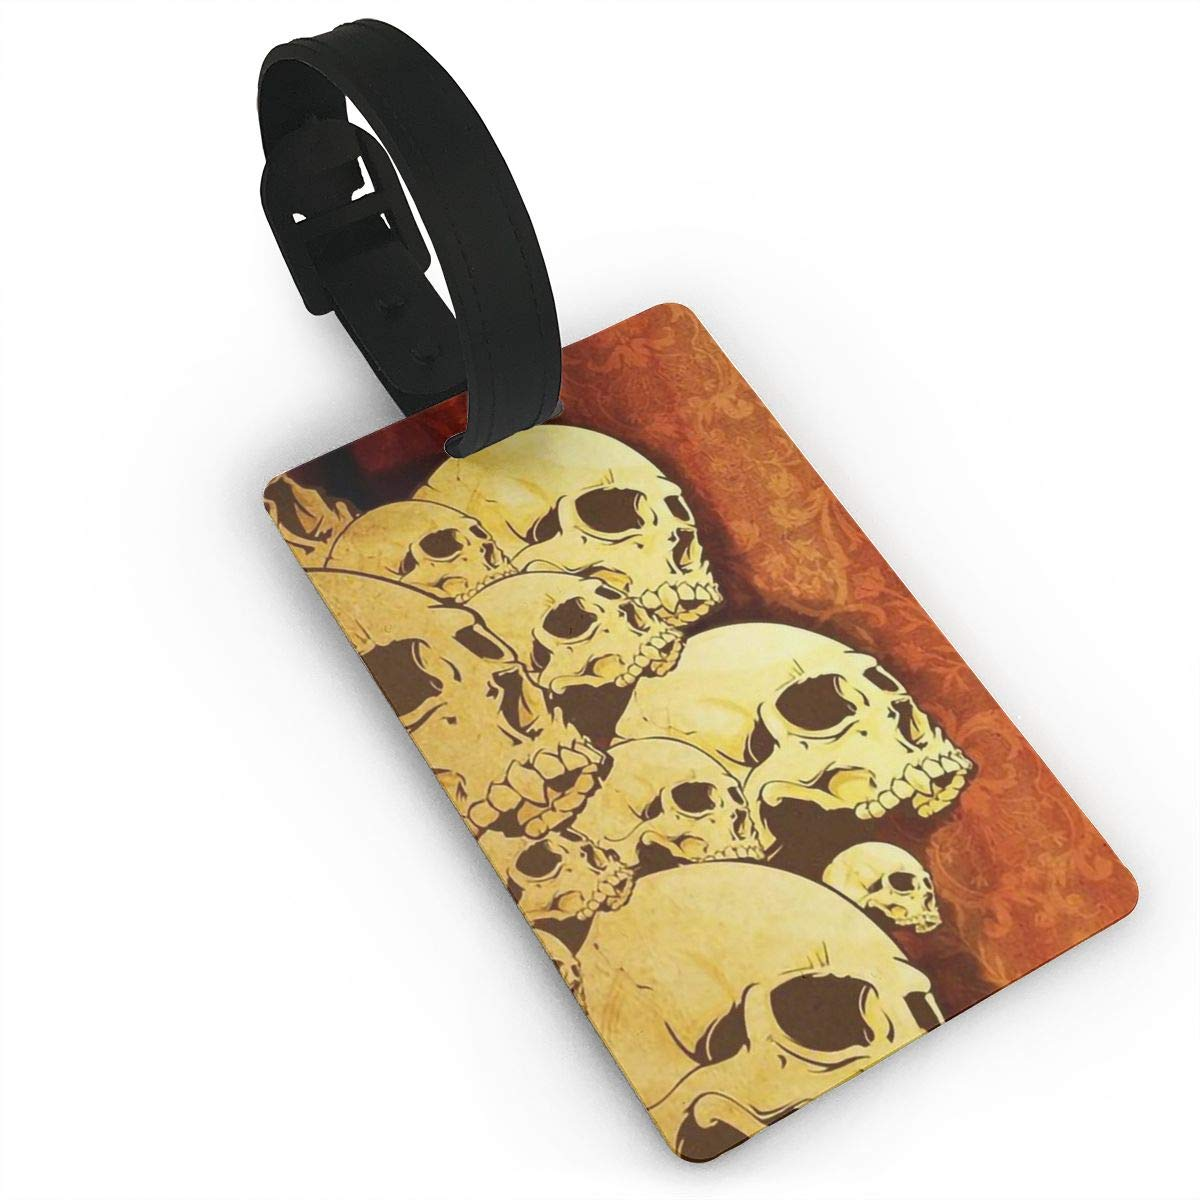 2 Pack Luggage Tags Skull Cruise Luggage Tag For Travel Tags Accessories